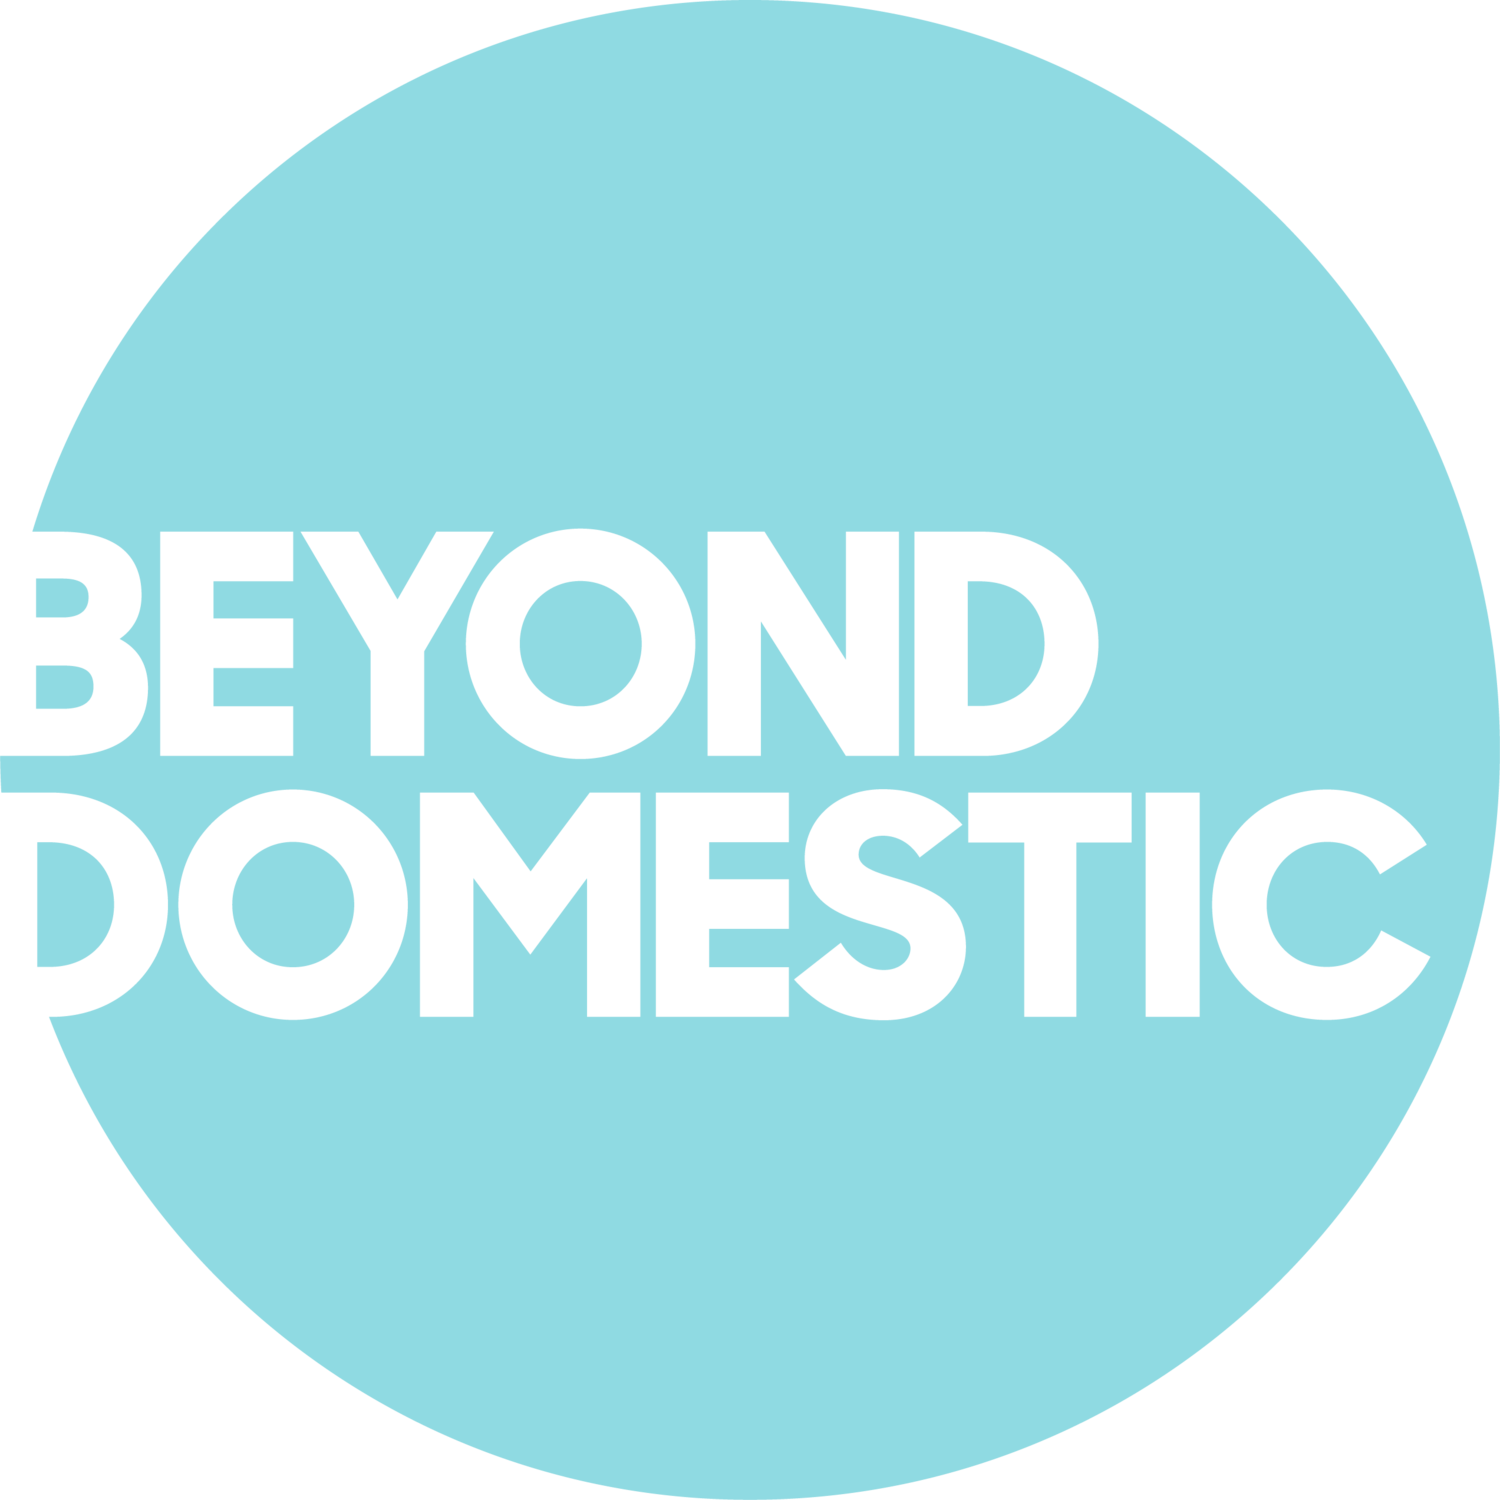 Beyond Domestic